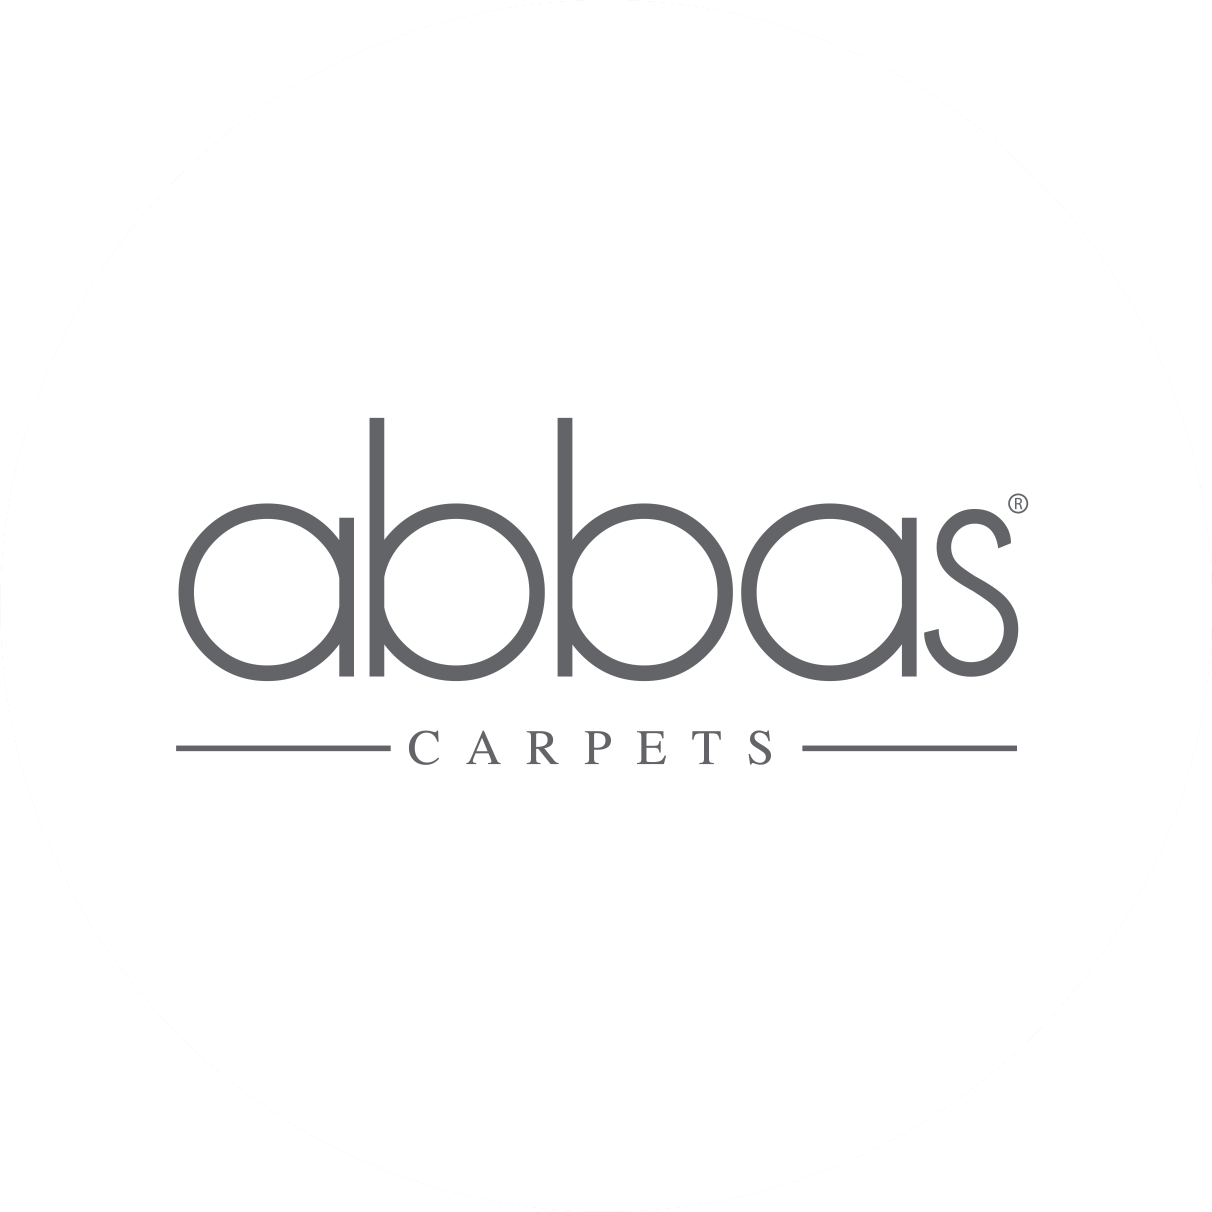 Philosophy abbas carpets successfully added to cart biocorpaavc Images